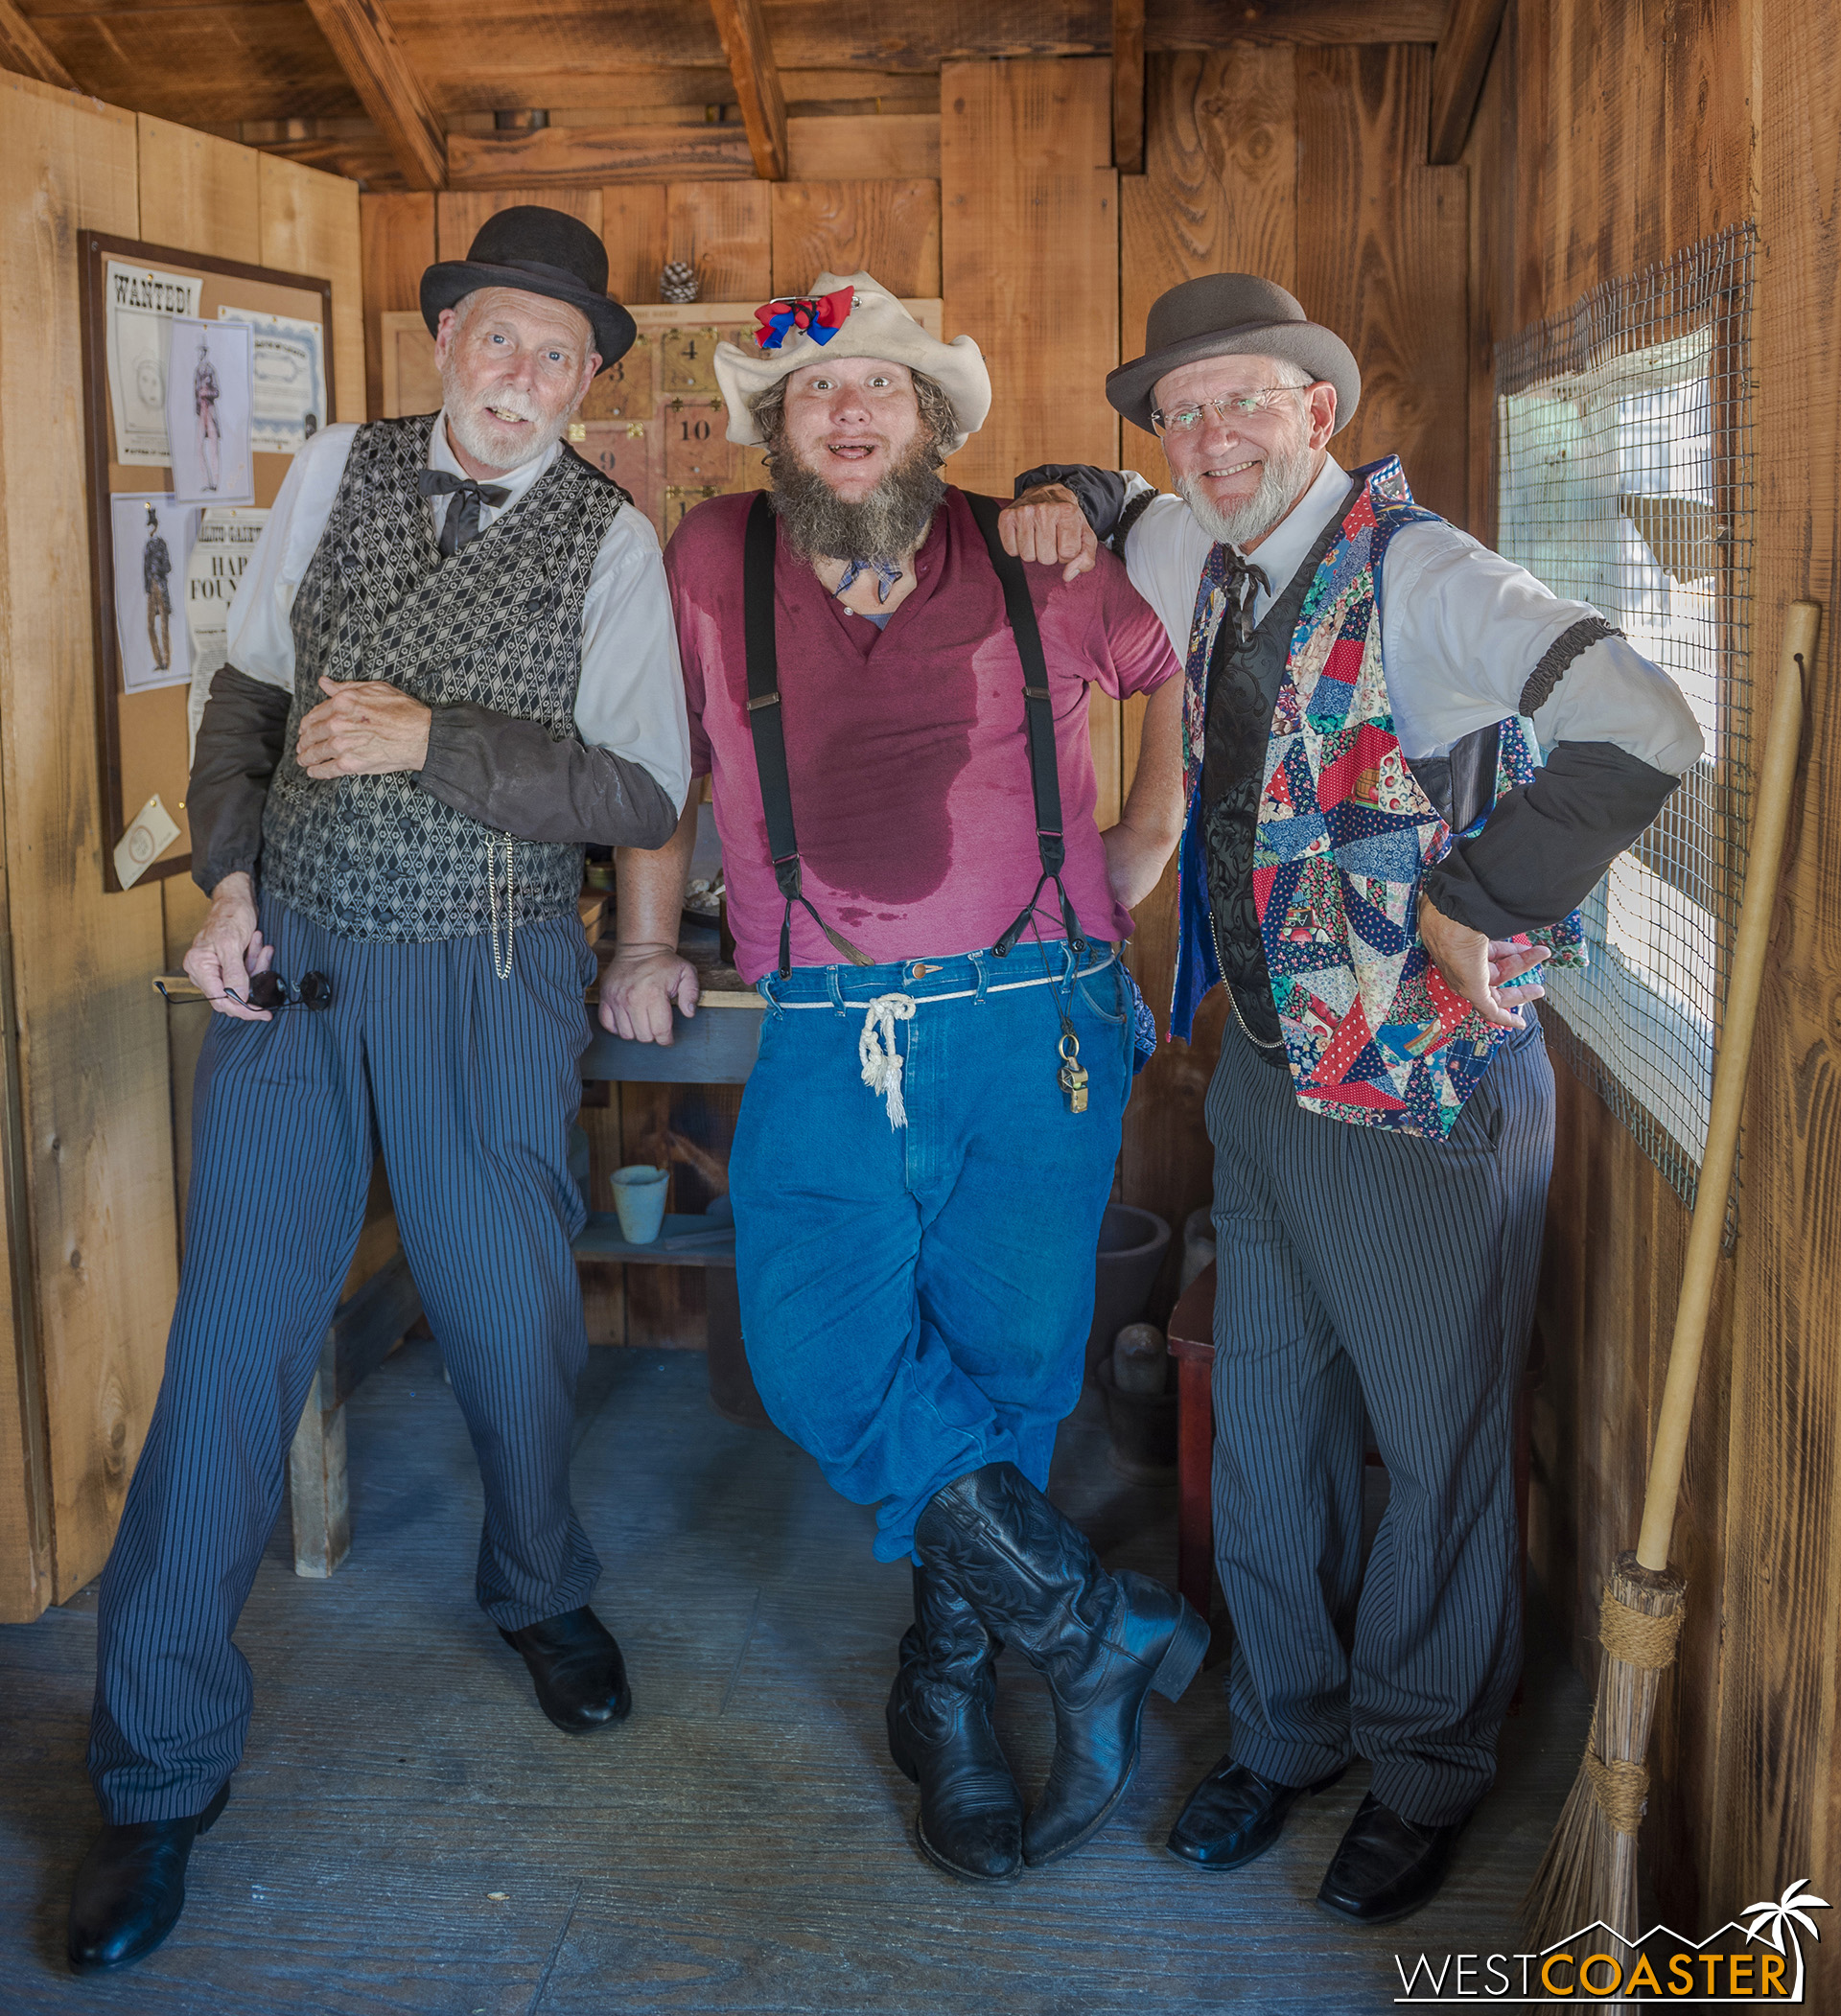 Left to right at the Assayer's Office: Augustus French, Flint Stahlek, and Zeke Connelly.